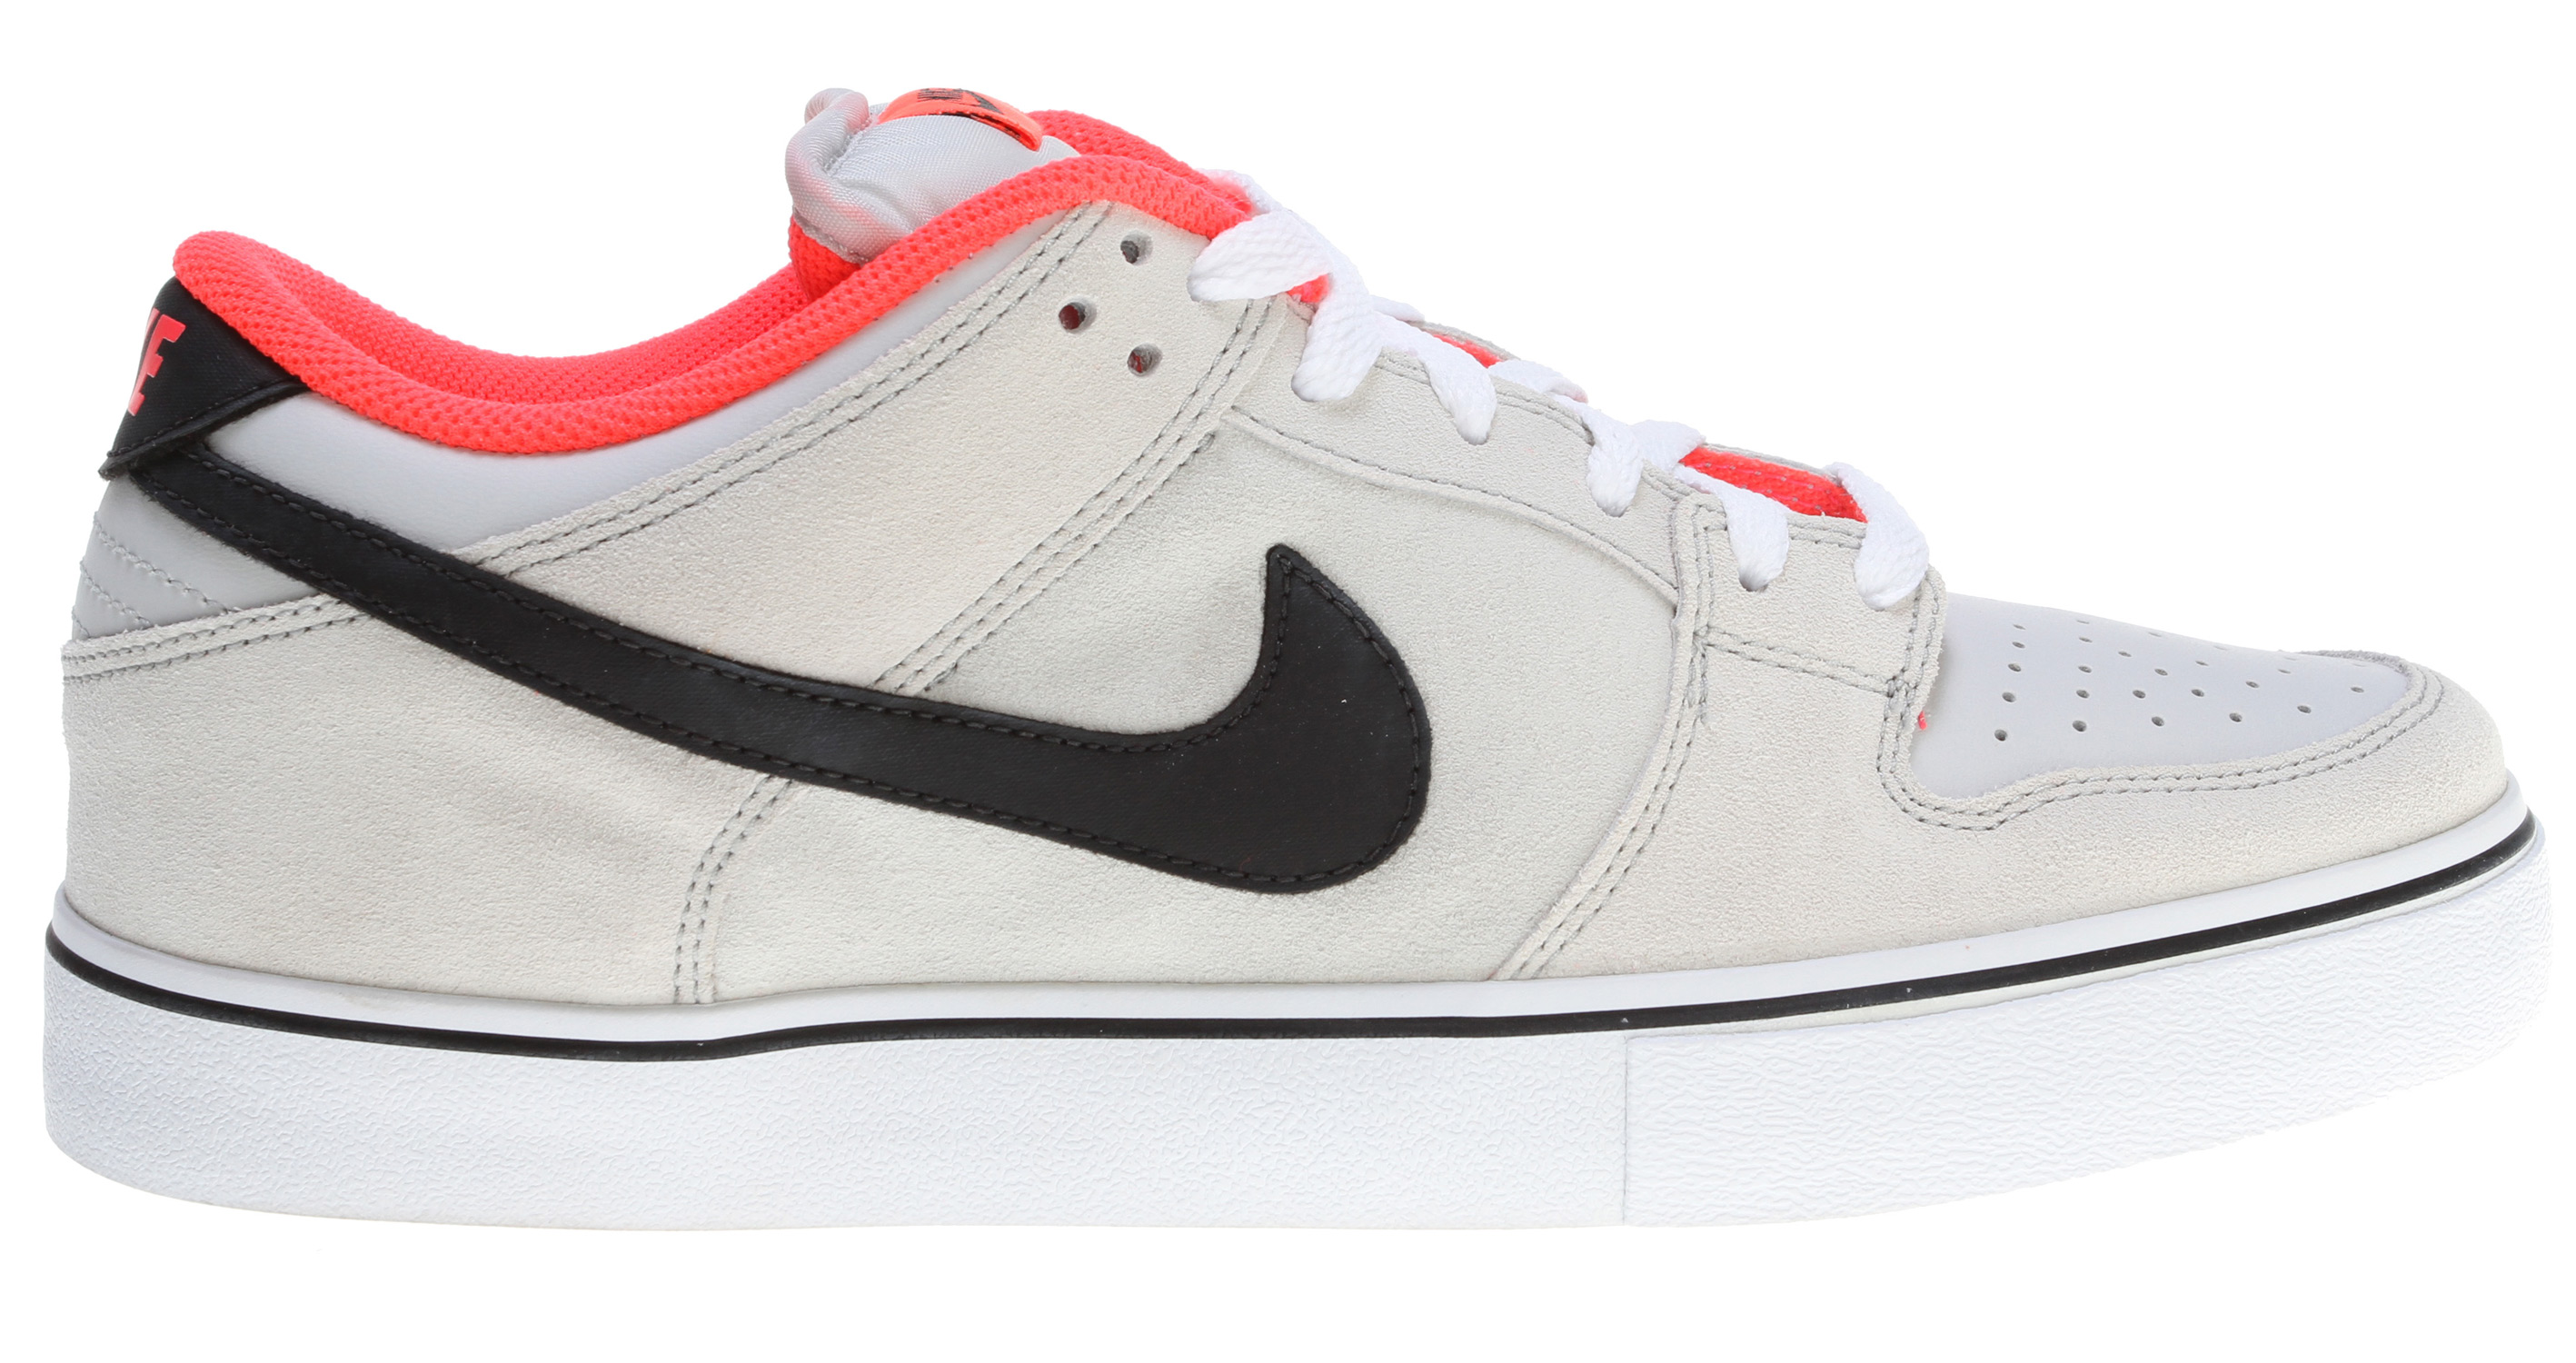 Skateboard Key Features of the Nike Dunk Low LR Skate Shoes: MIDSOLE: Combination drop-in midsole/sockliner designed for maximum comfort and impact protection. UPPER: Leather, suede, and Nubuck with classic skate overlays. Lightweight mesh on the tongue and perforations on the vamp for increased breathability. Classic styling with durability and protection. Excellent board control in a low-profile outsole while maintaining good impact absorption. OUTSOLE: Rubber outsole for durability. Designed for flexibility and board feel. - $55.95